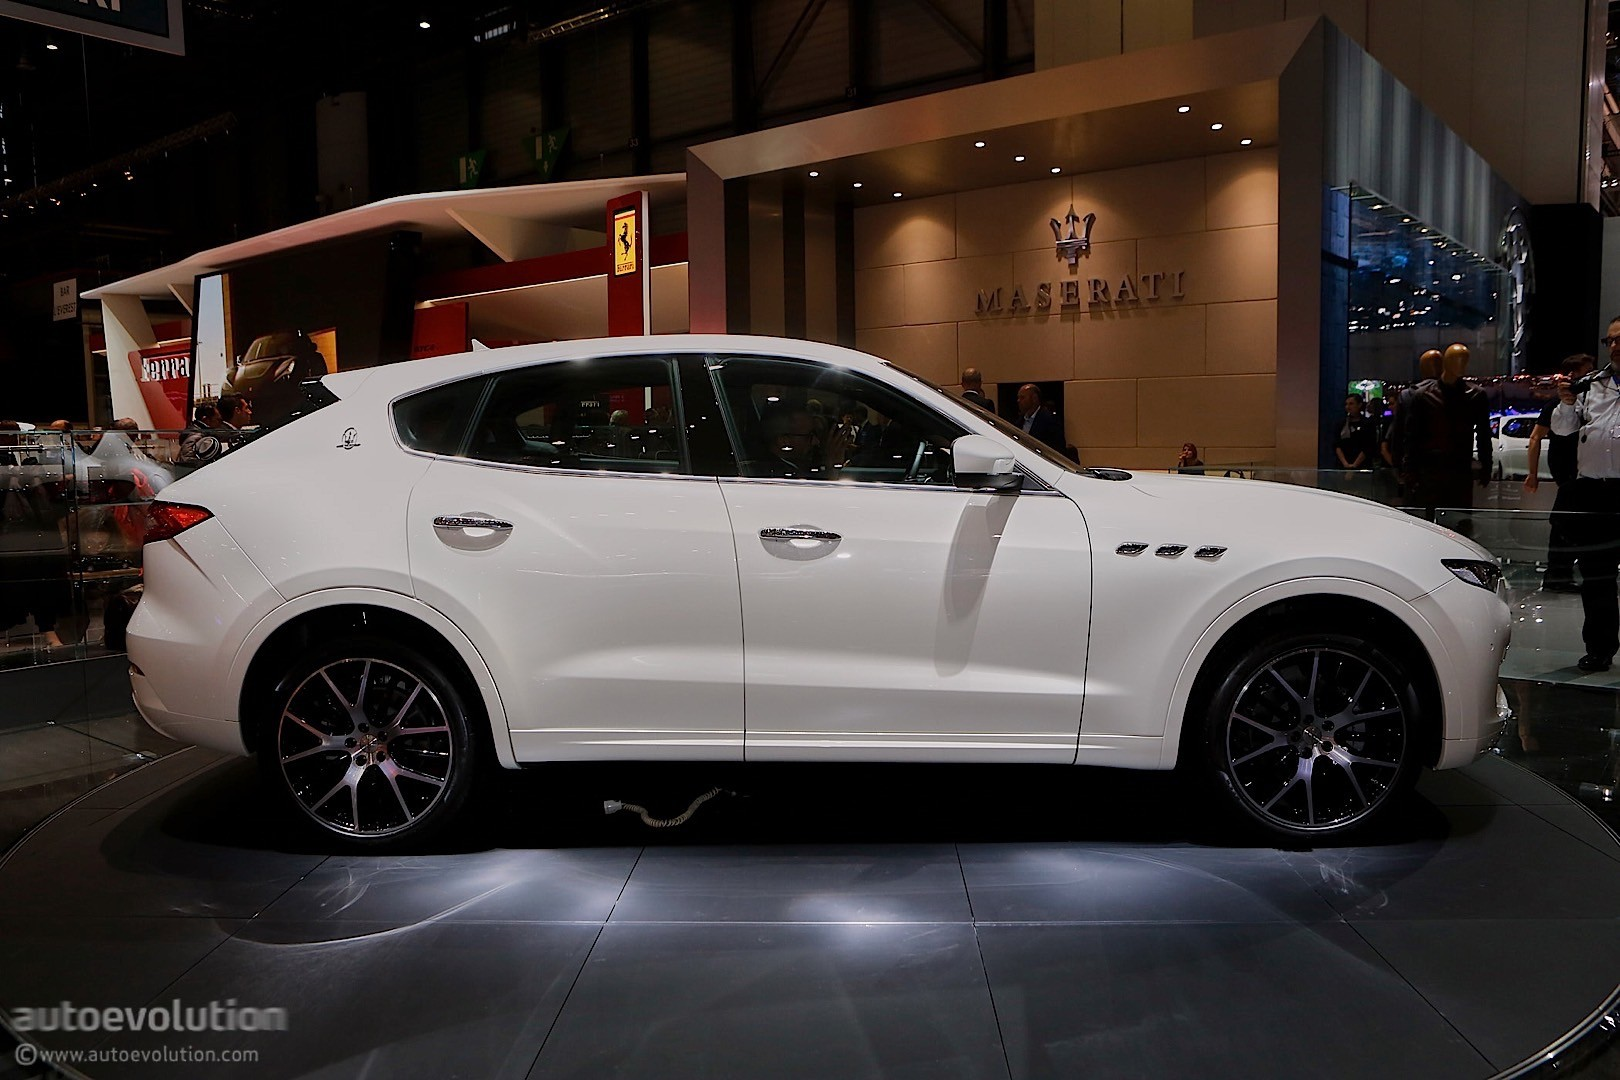 2017 Maserati Levante Us Pricing Announced It S Coming To